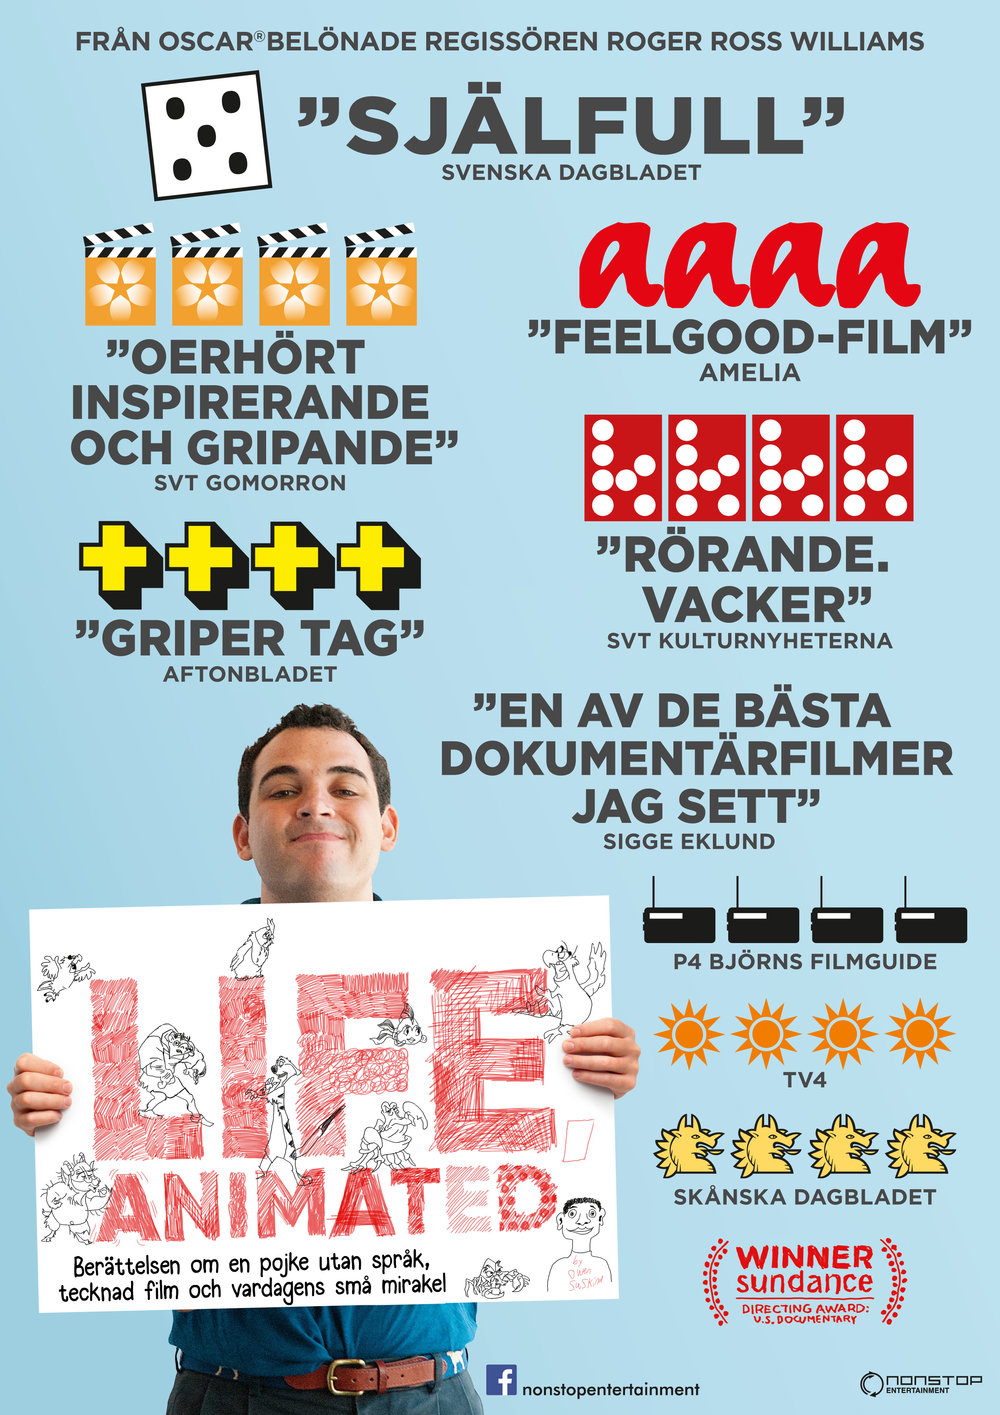 life-animated-poster.jpg